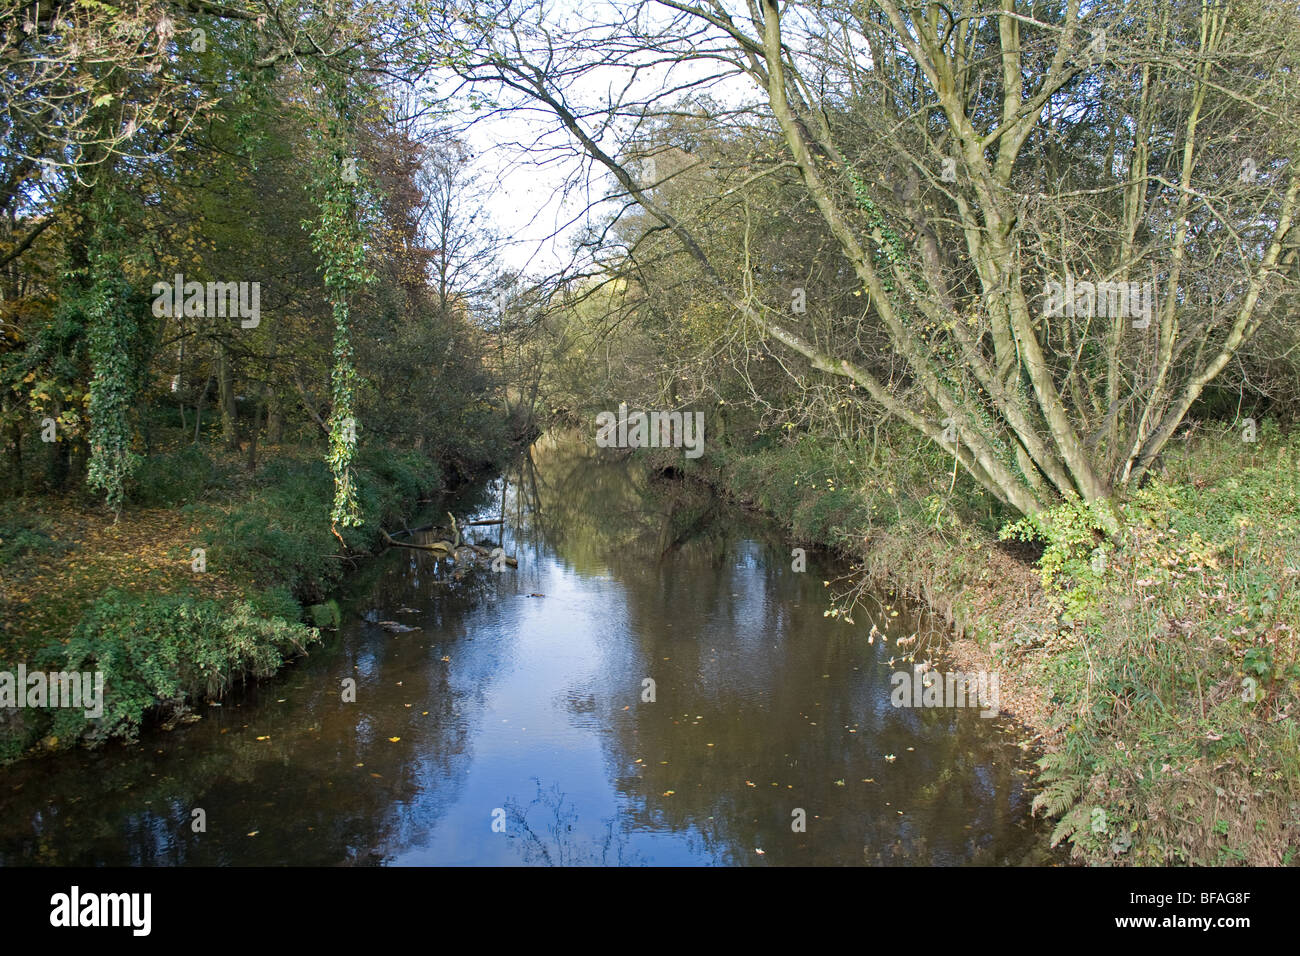 River Churnet at Cheddleton, Staffordshire - Stock Image